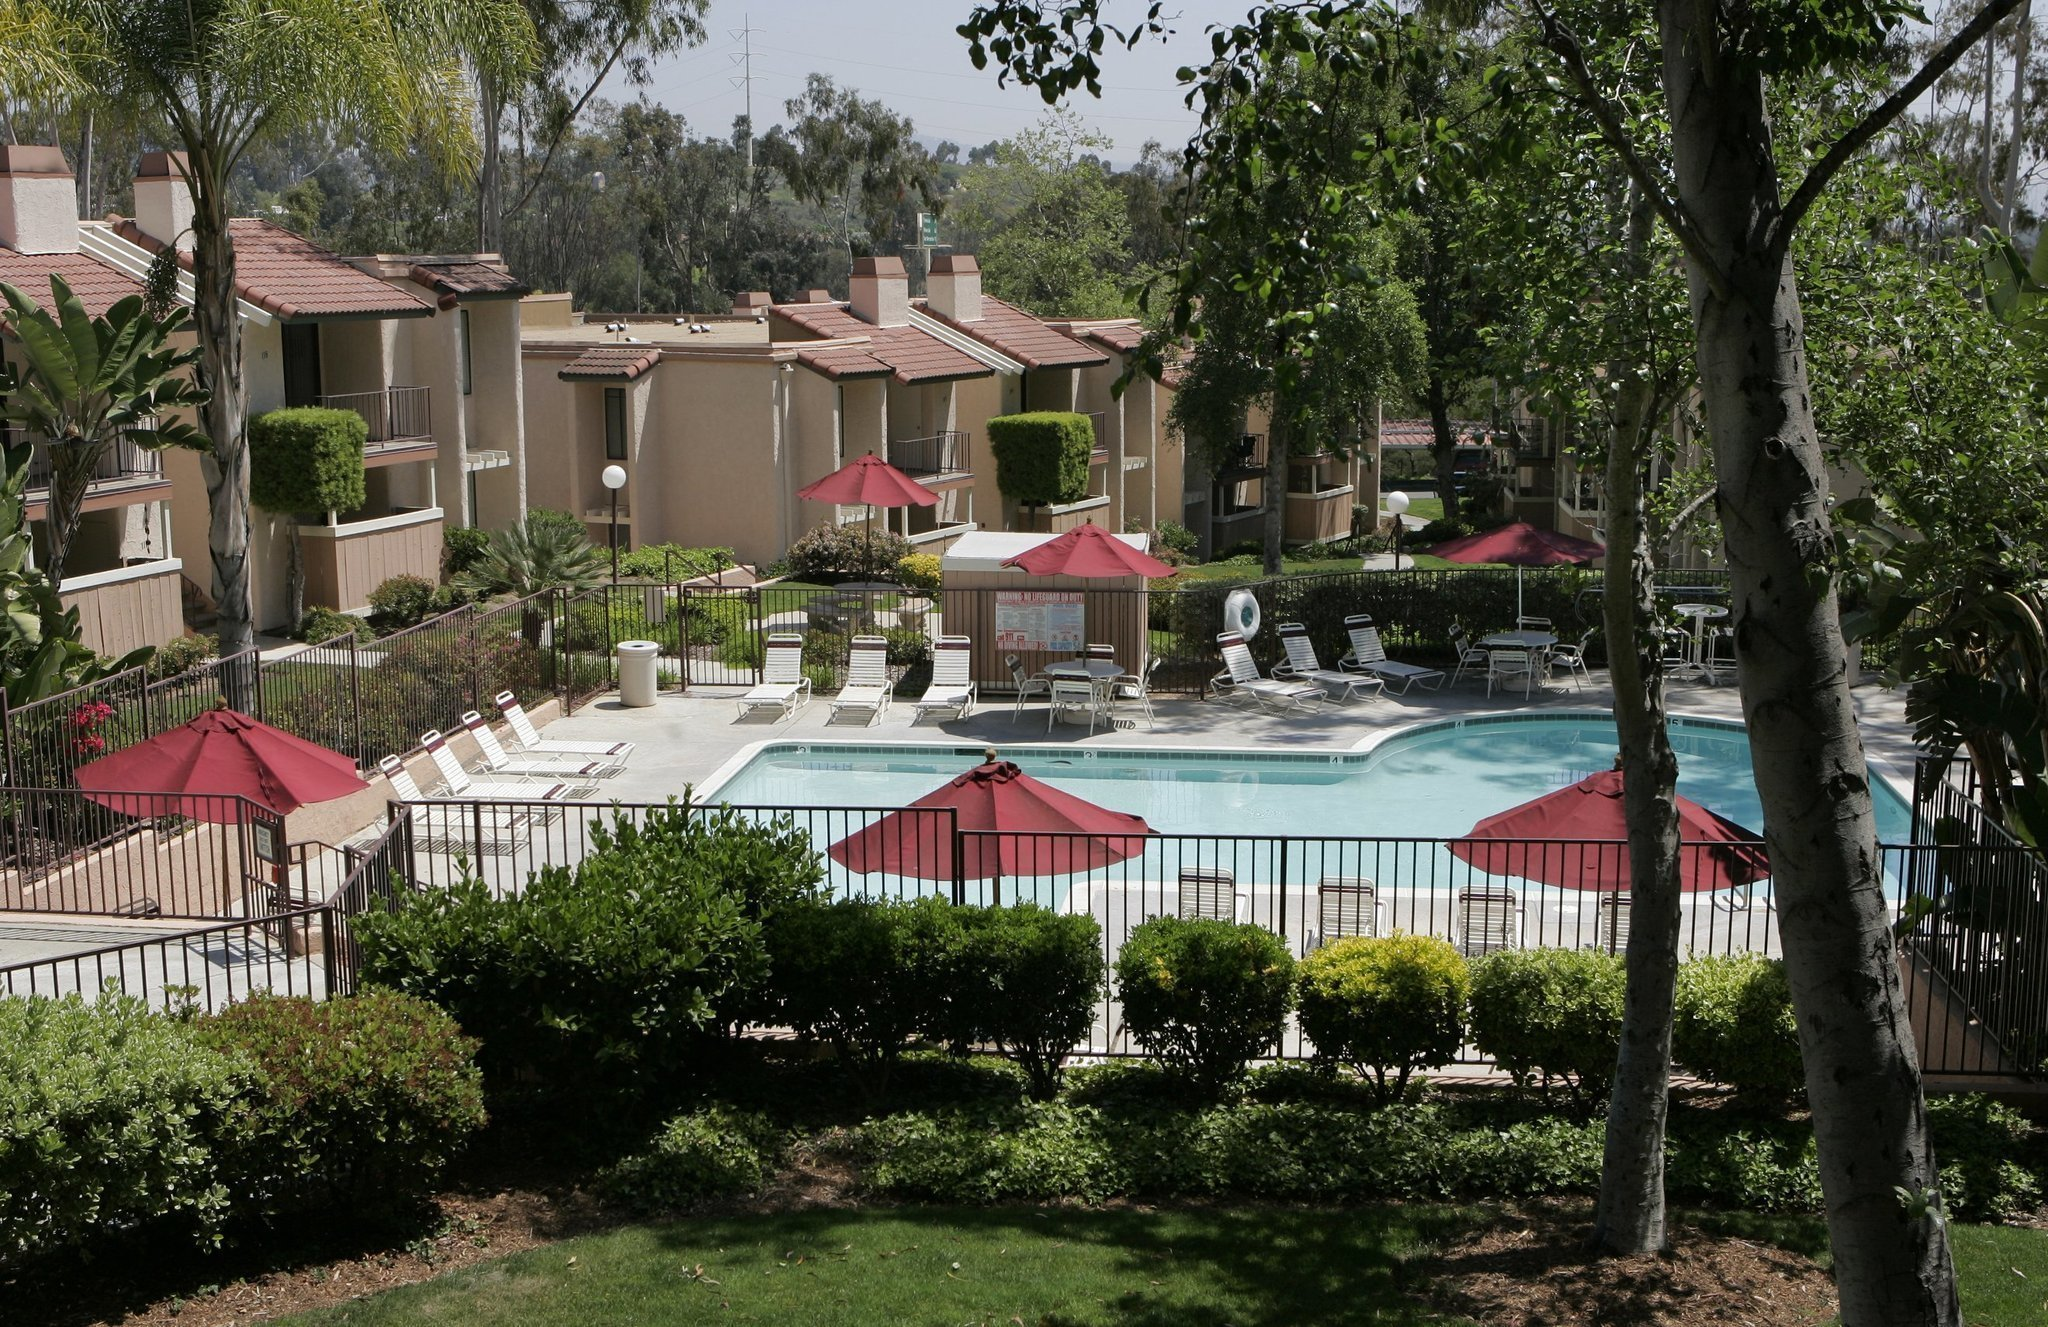 New pool rules for rental complexes the san diego union - California swimming pool building codes ...